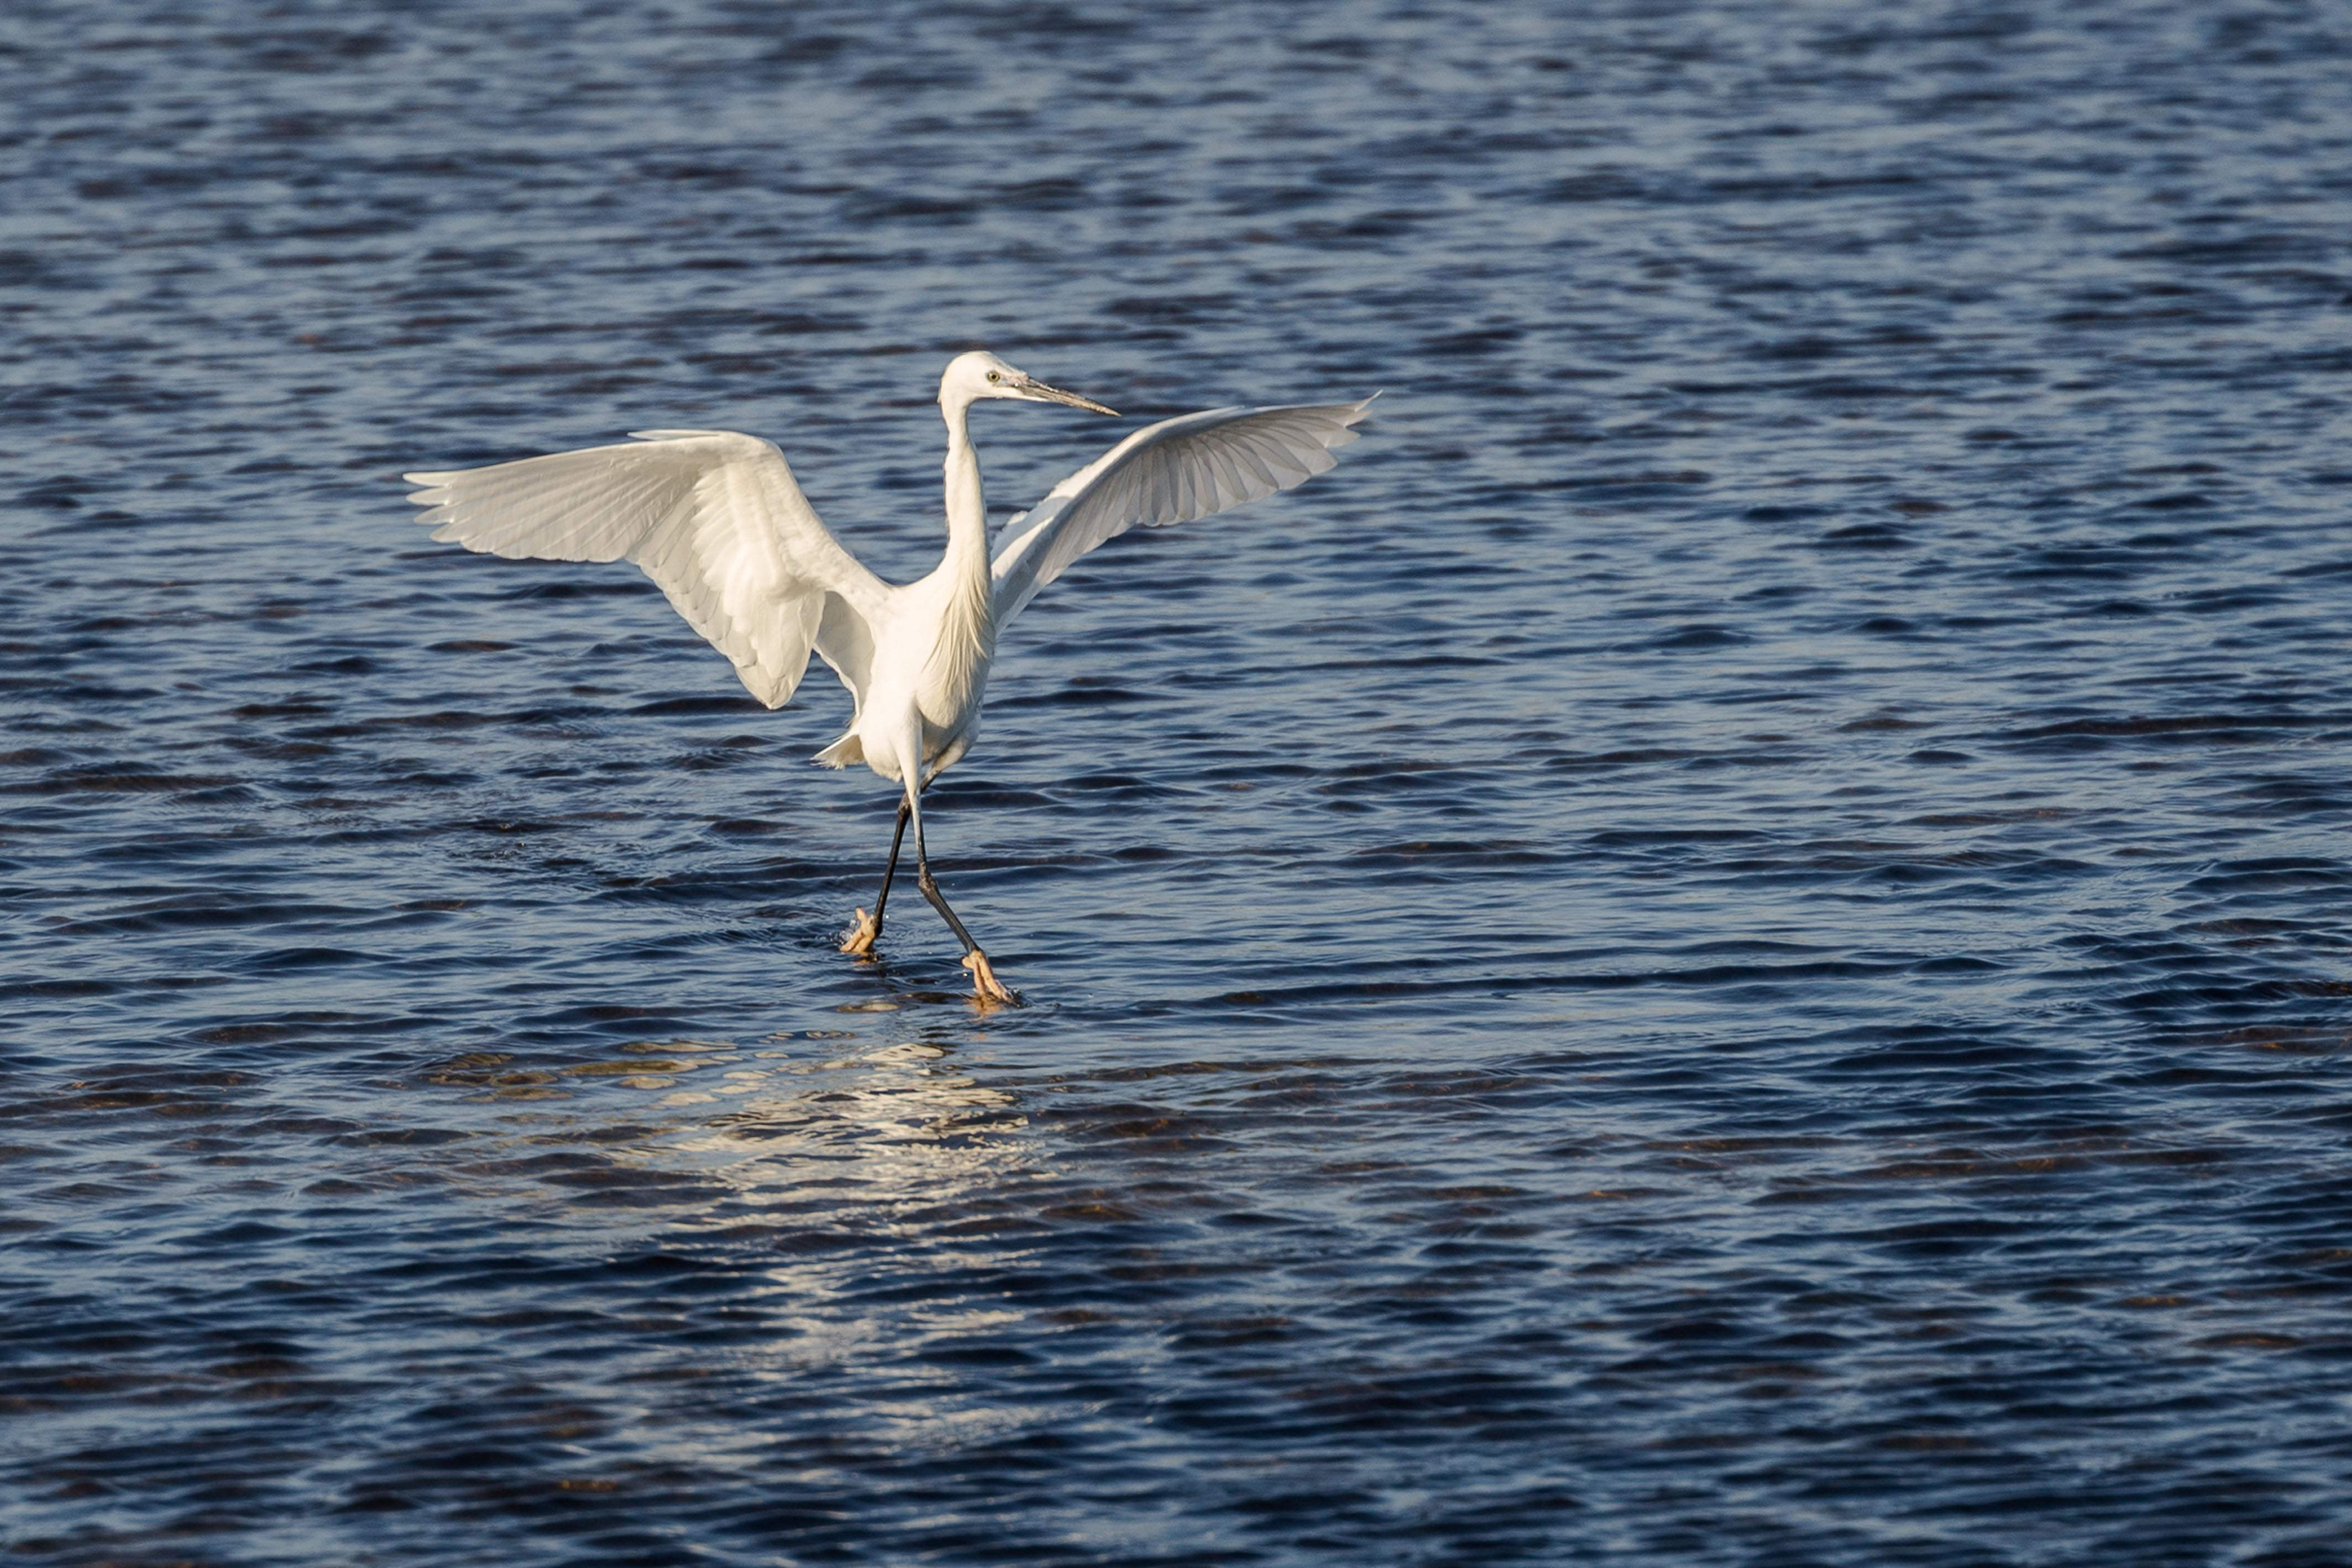 This bird can walk on water - Caters News Agency